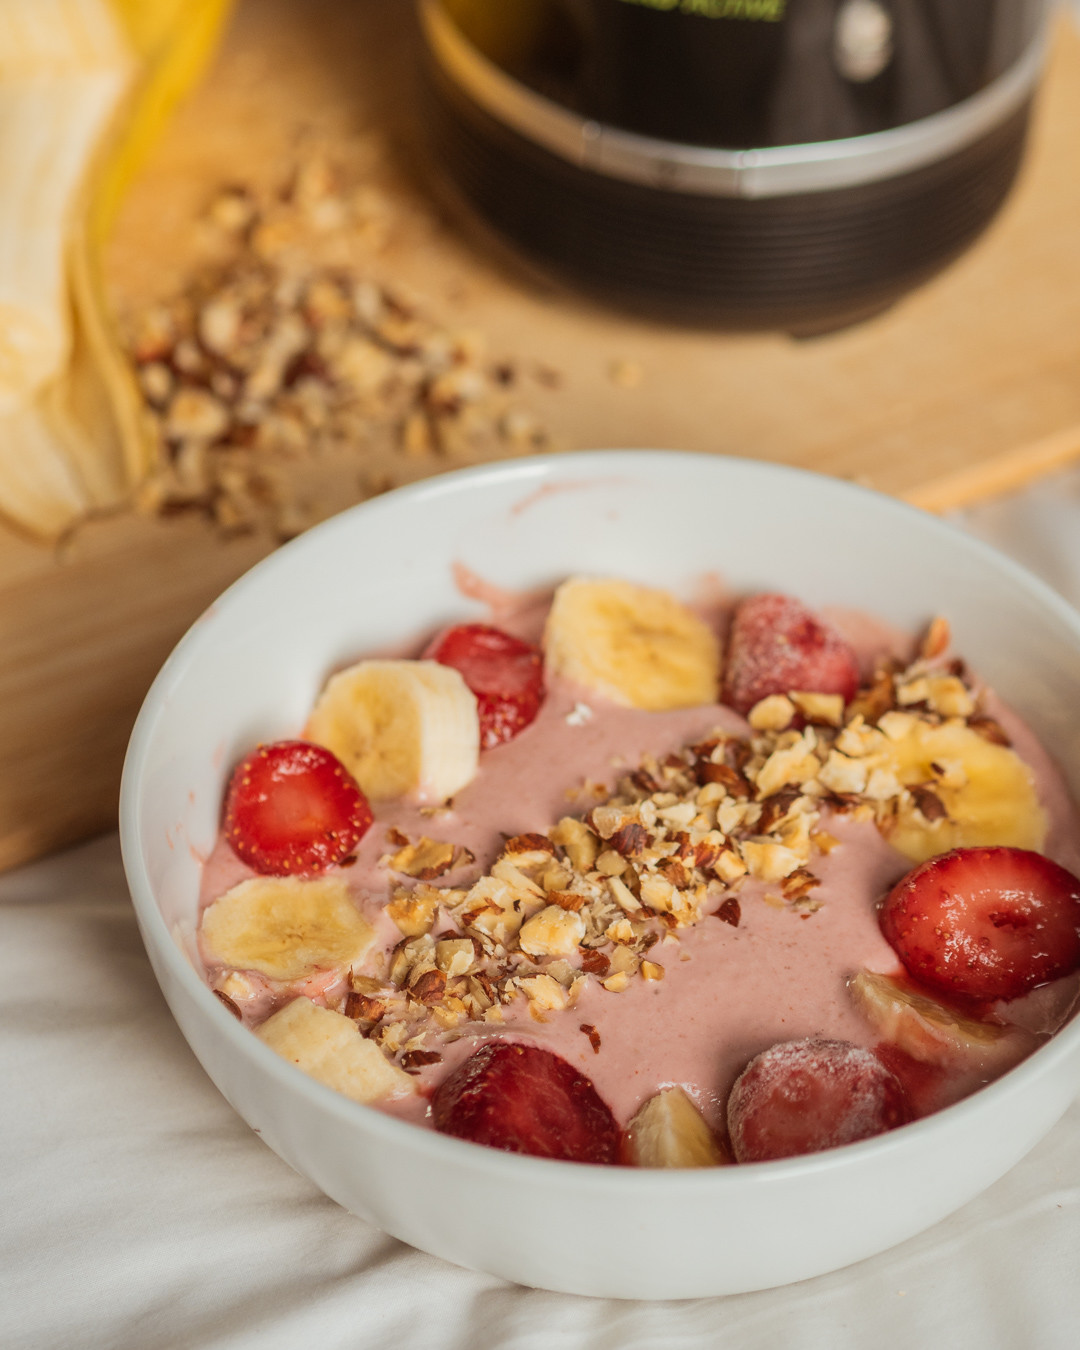 Ad Strawberry Banana And Peanut Butter Smoothie Bowl